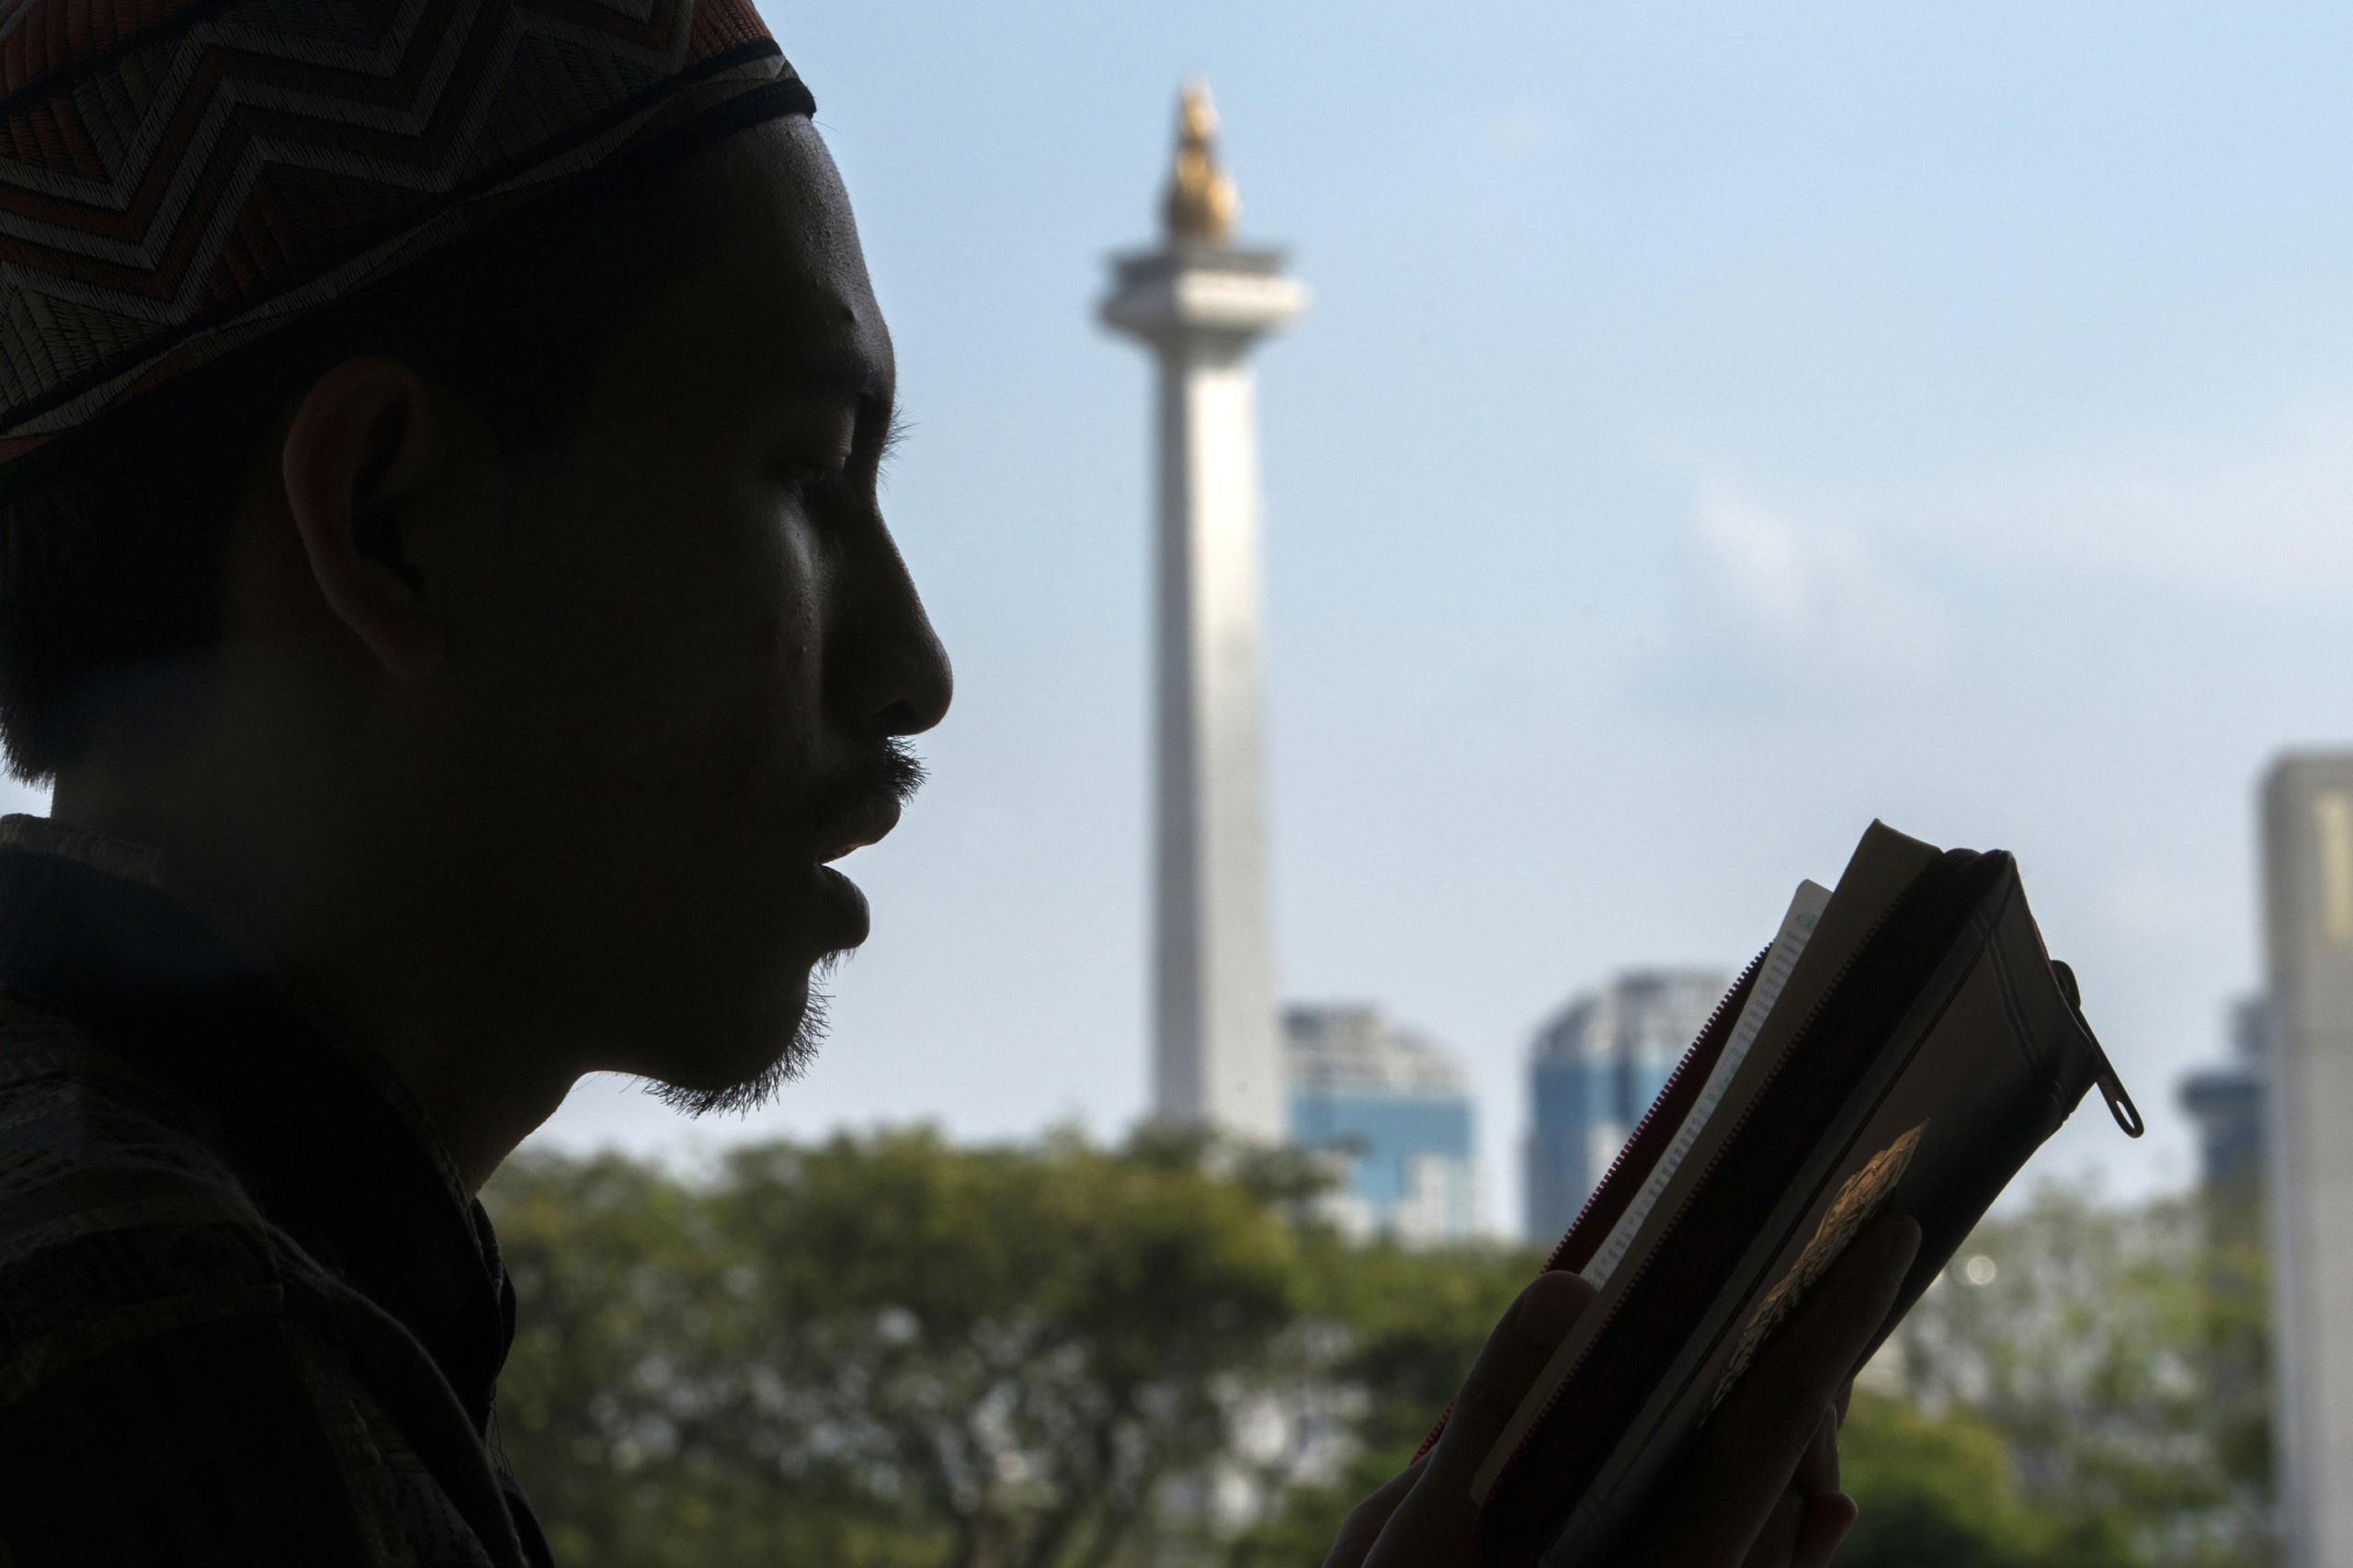 Jakarta, Indonesia. A man prayers on the day of the holy fasting month of Ramadan at Mosque.